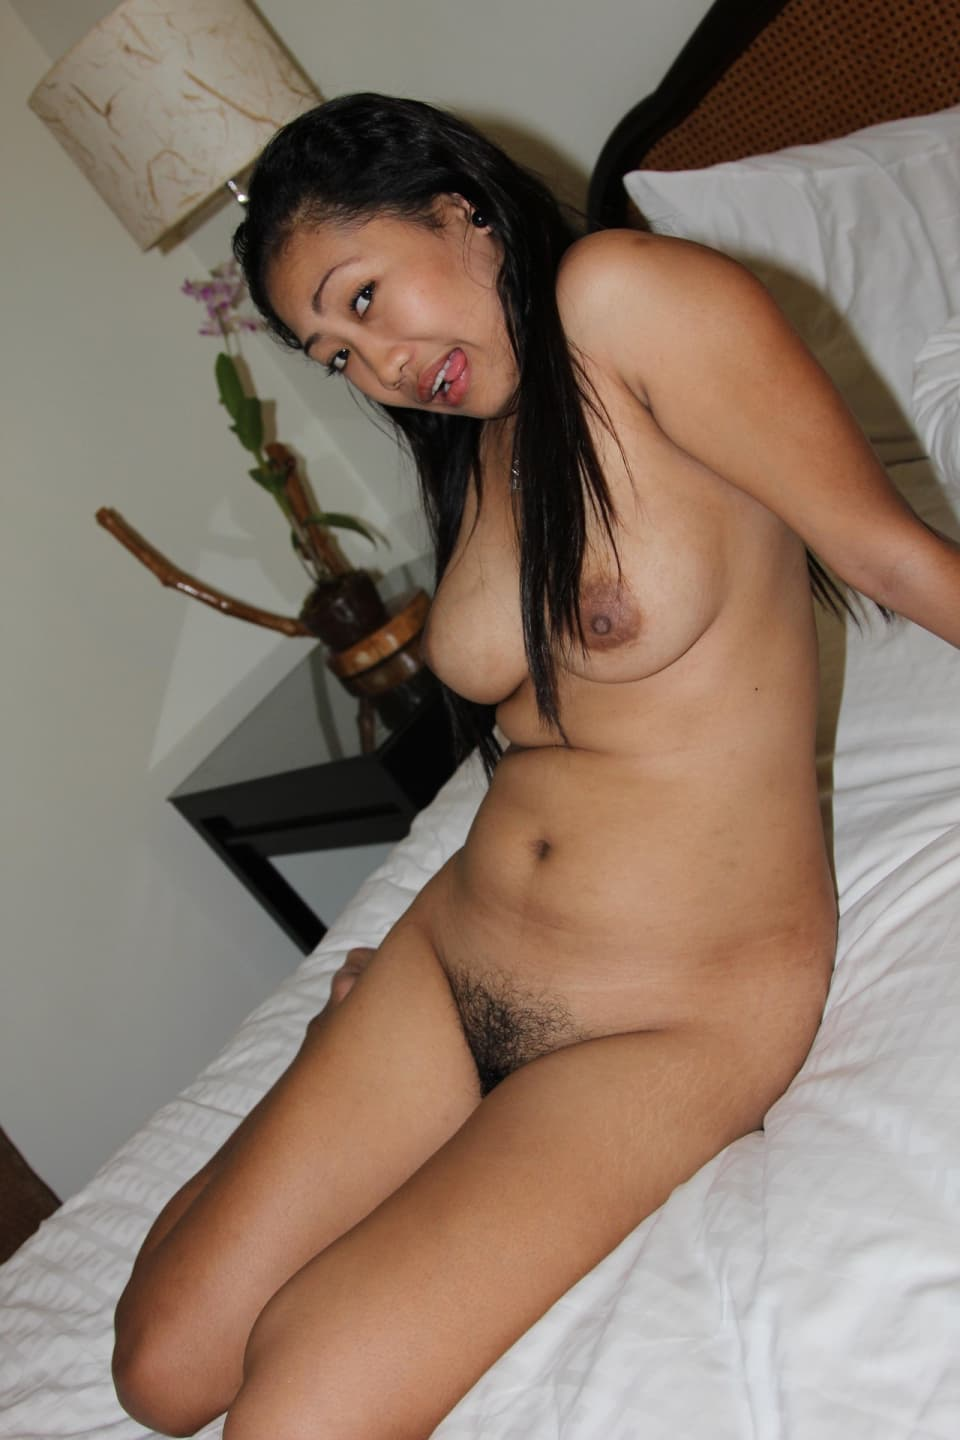 Asian girls chubby nude amateur